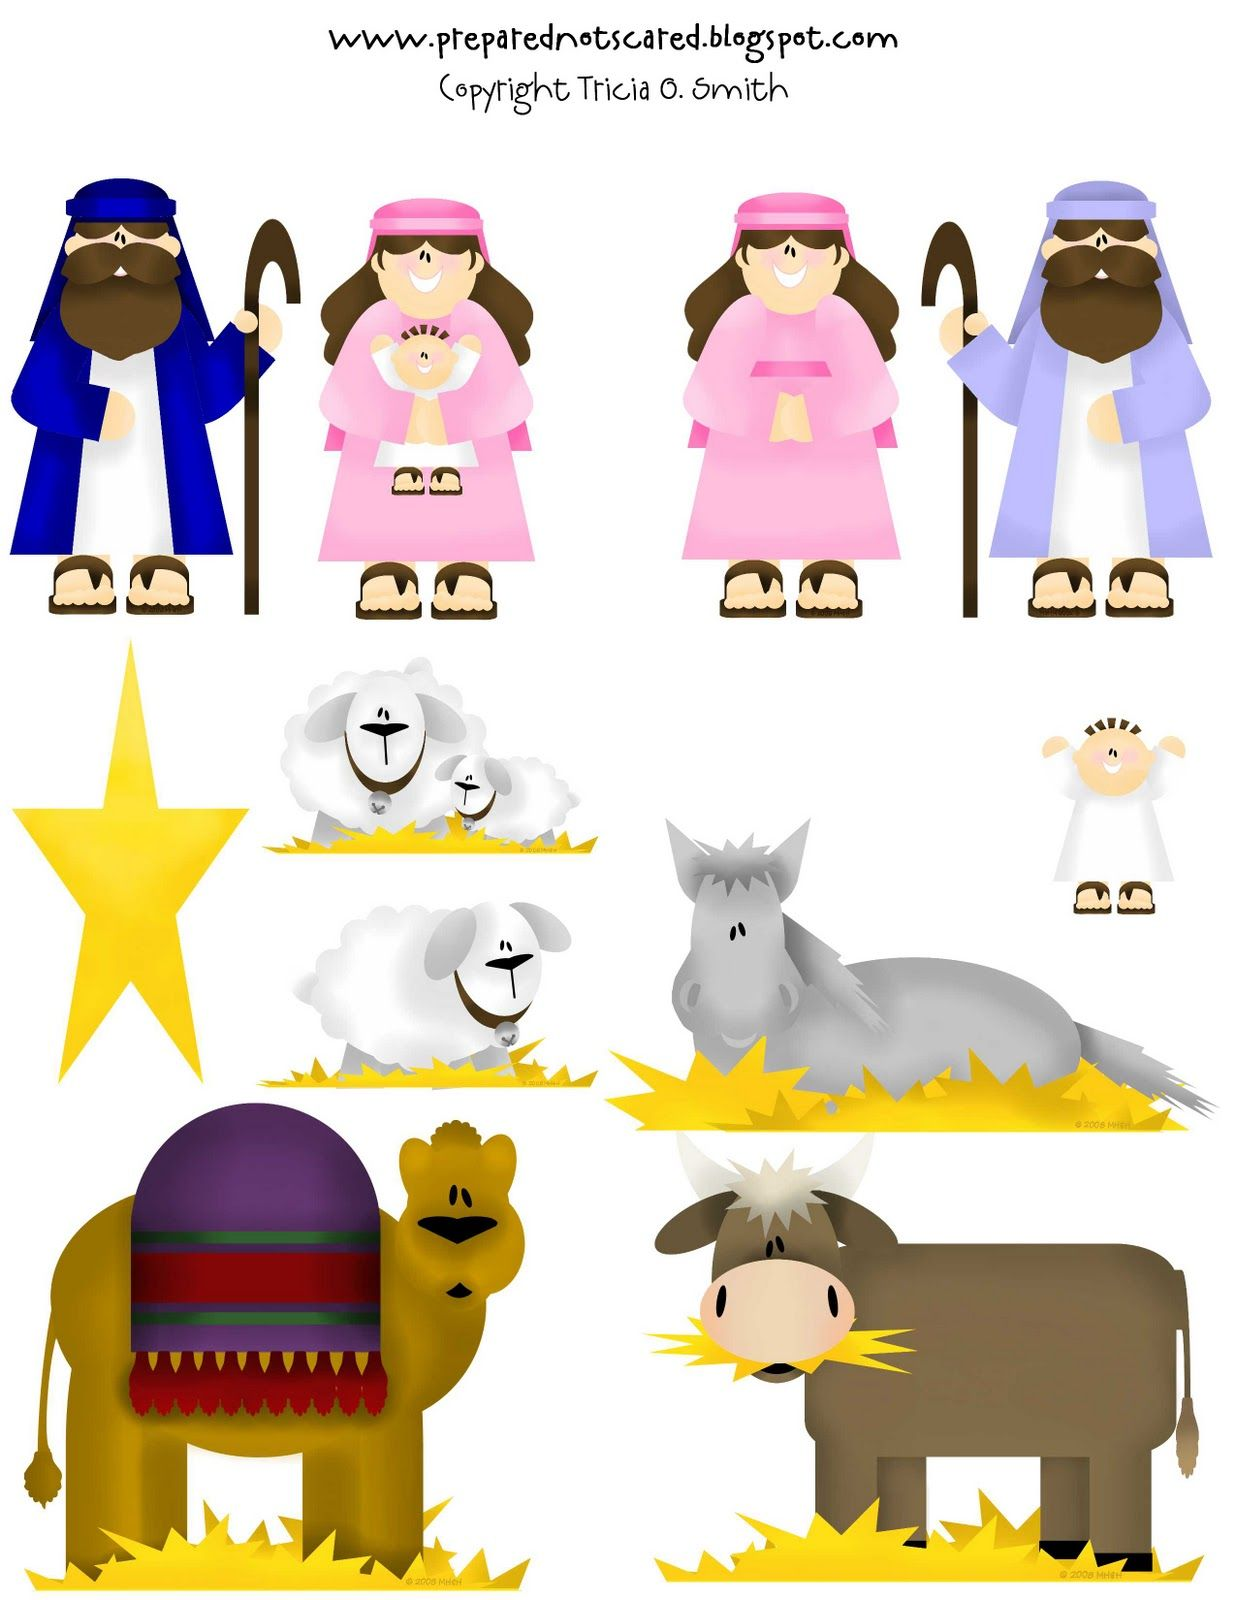 Printable For Nativity Set Laminate And Attach Magnet To The Back Encourage Lil